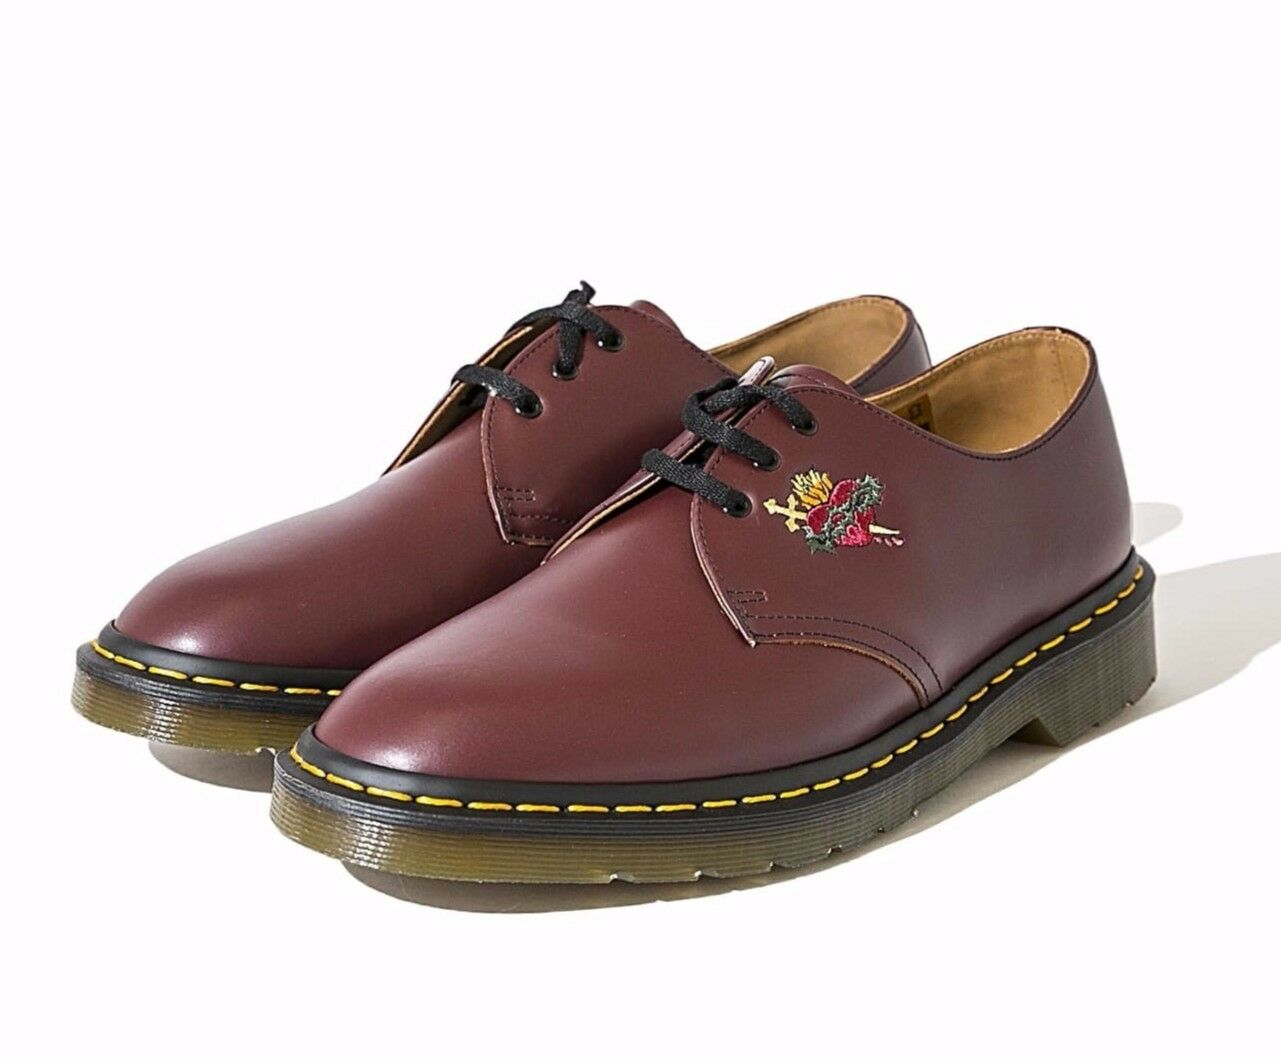 SUPREME DR. MARTENS SACRED HEART 3 EYE SHOE SIZE 10.5 BRAND NEW (AUTHENTIC)